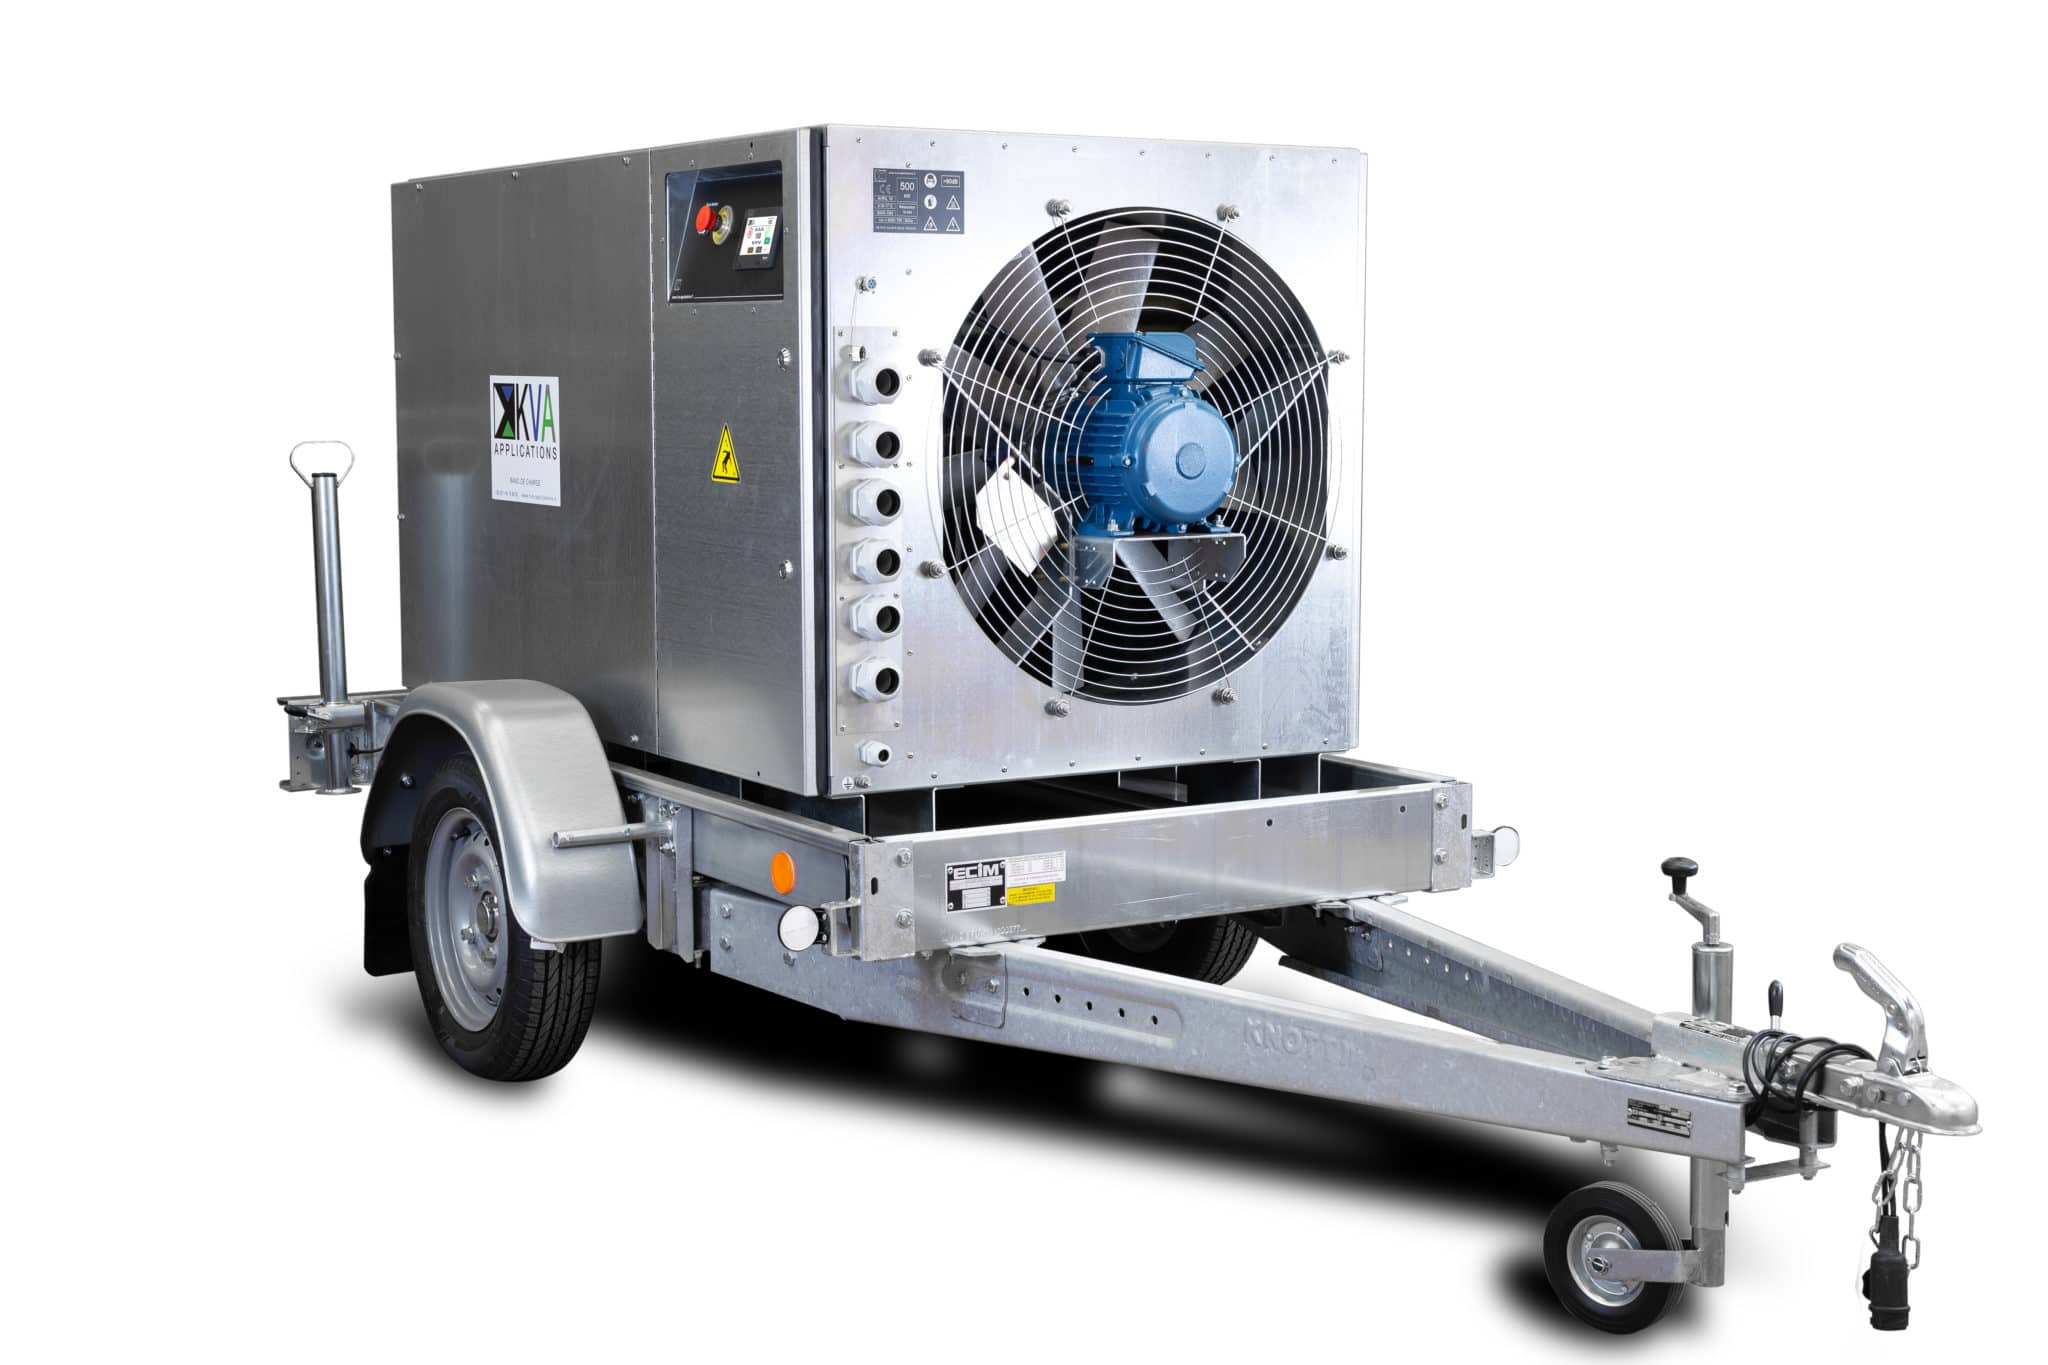 The load bank to ensure a controlled cold recovery of your electrical equipment and power sources